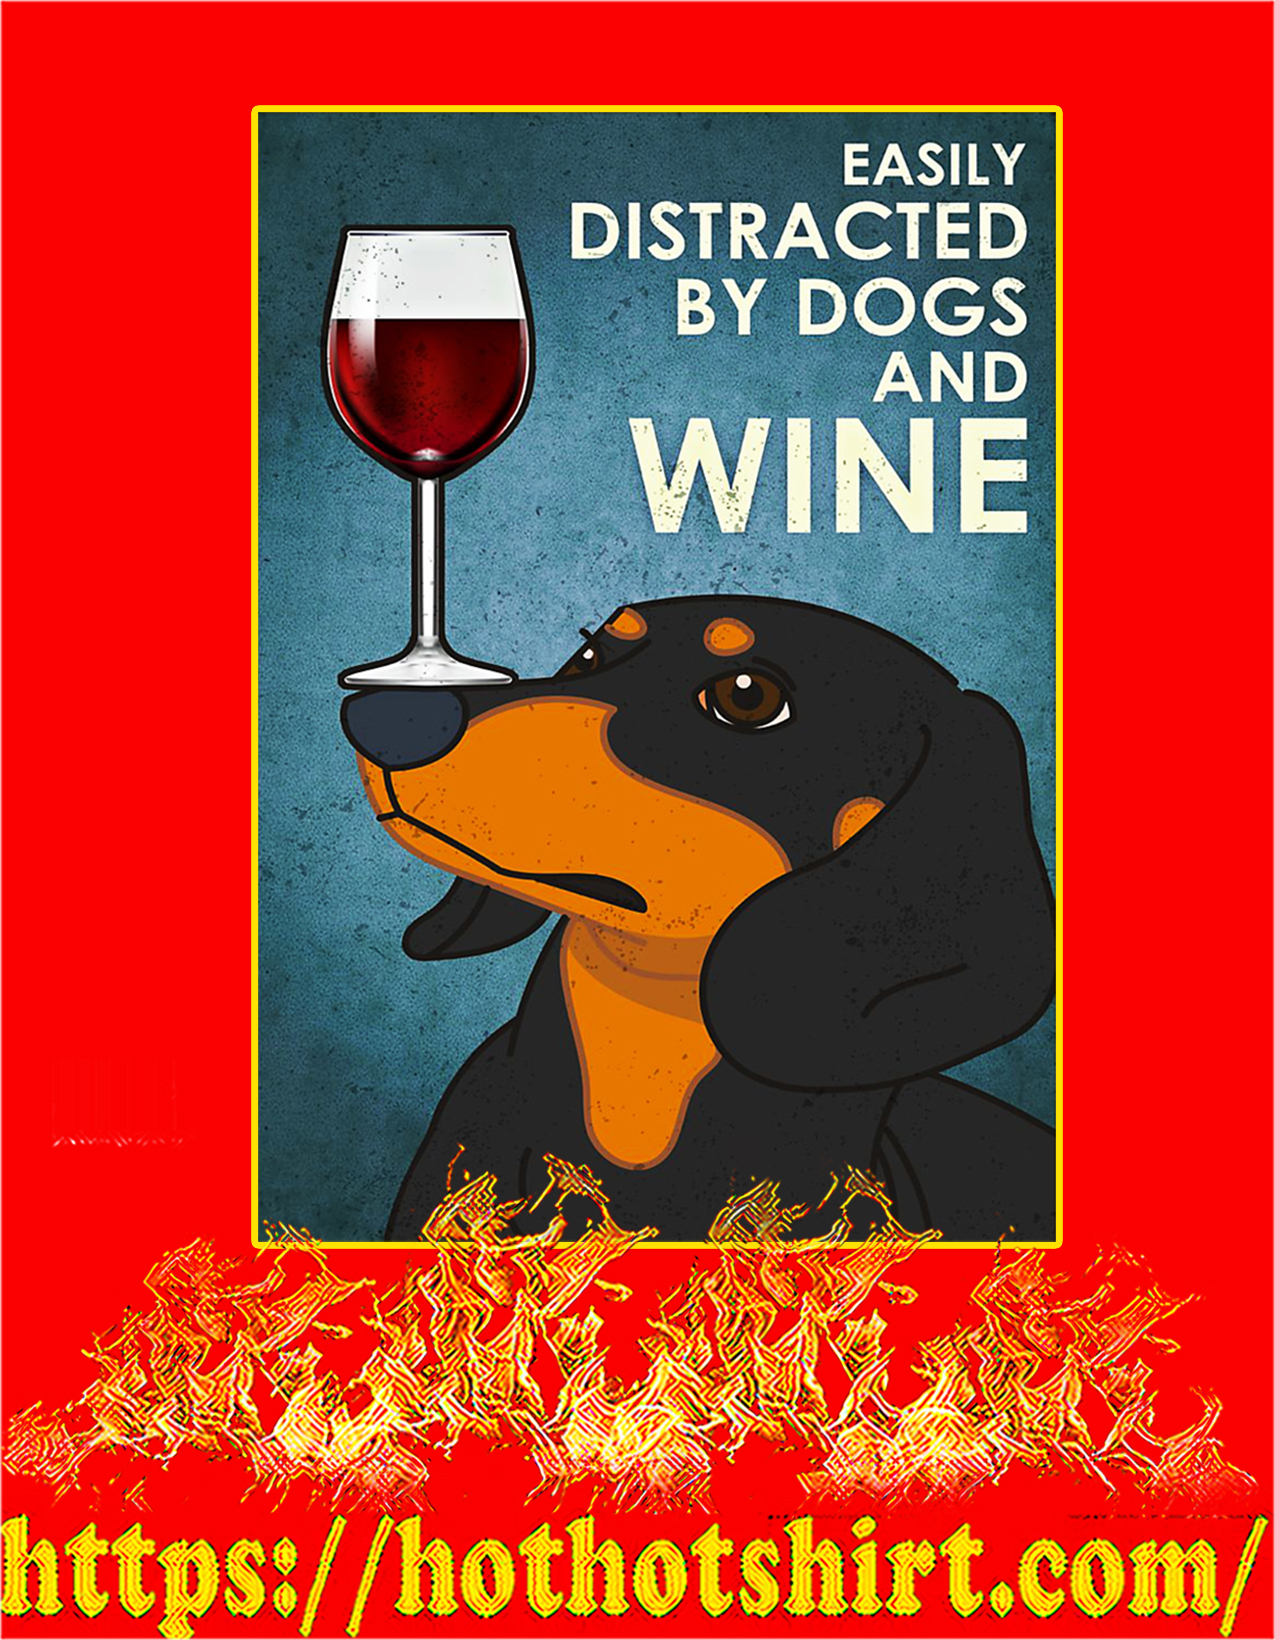 Dachshund Easily distracted by dogs and wine poster - A2